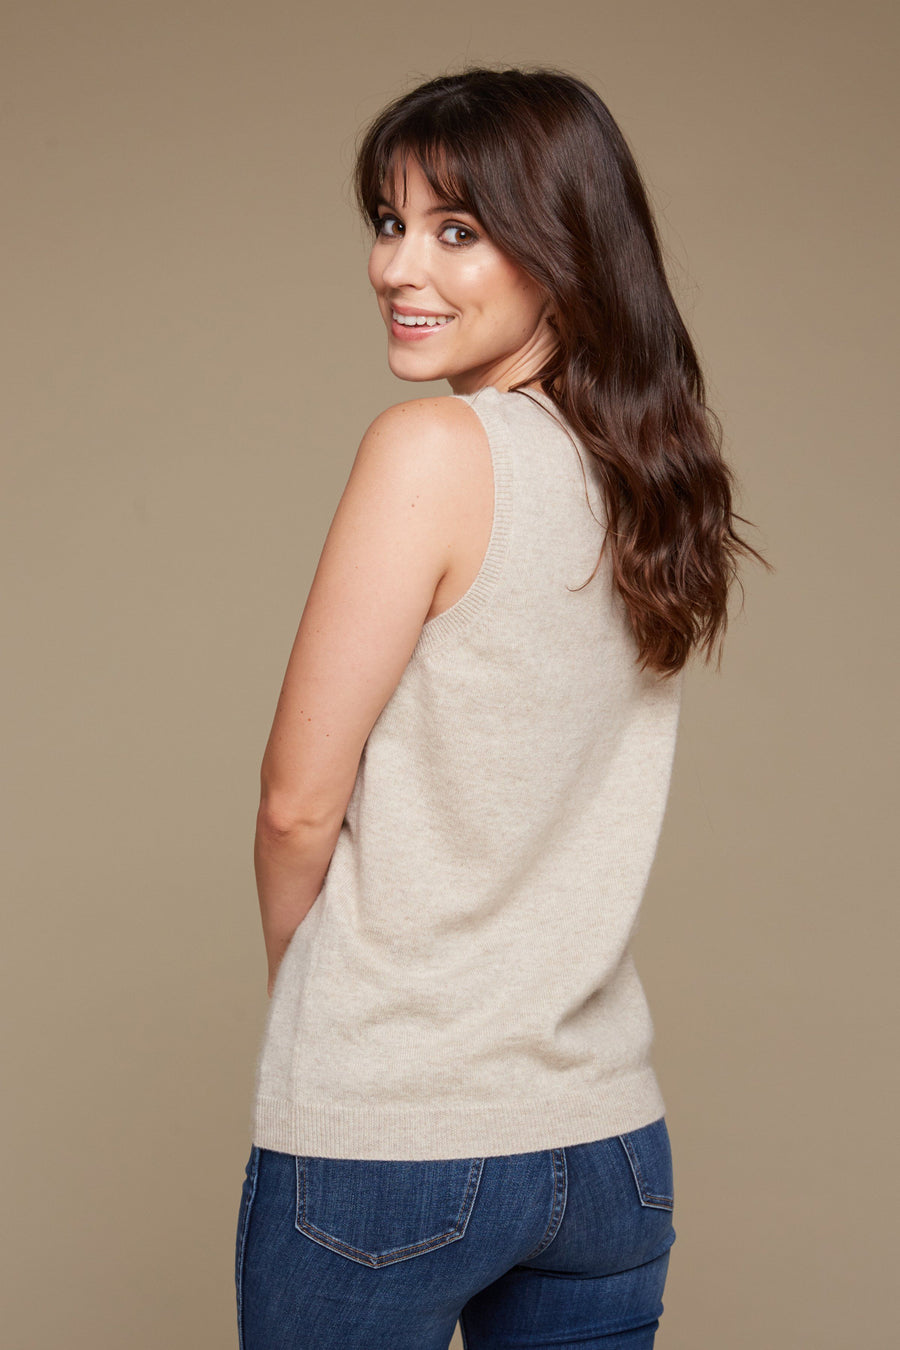 pine cashmere luxury women's classic sleeveless 100% pure organic cashmere shell top in beige